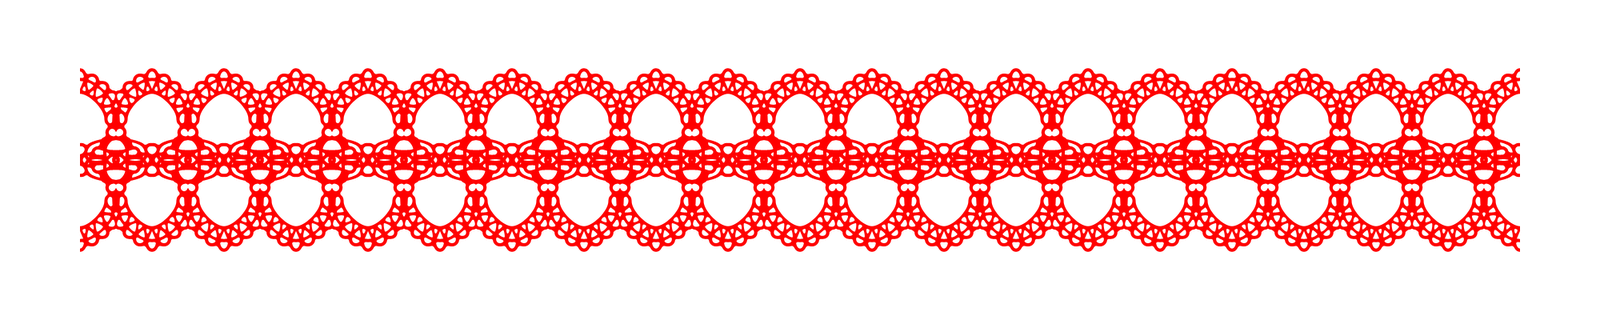 Lace lace designs lace designs png lace png photoshop png lace png